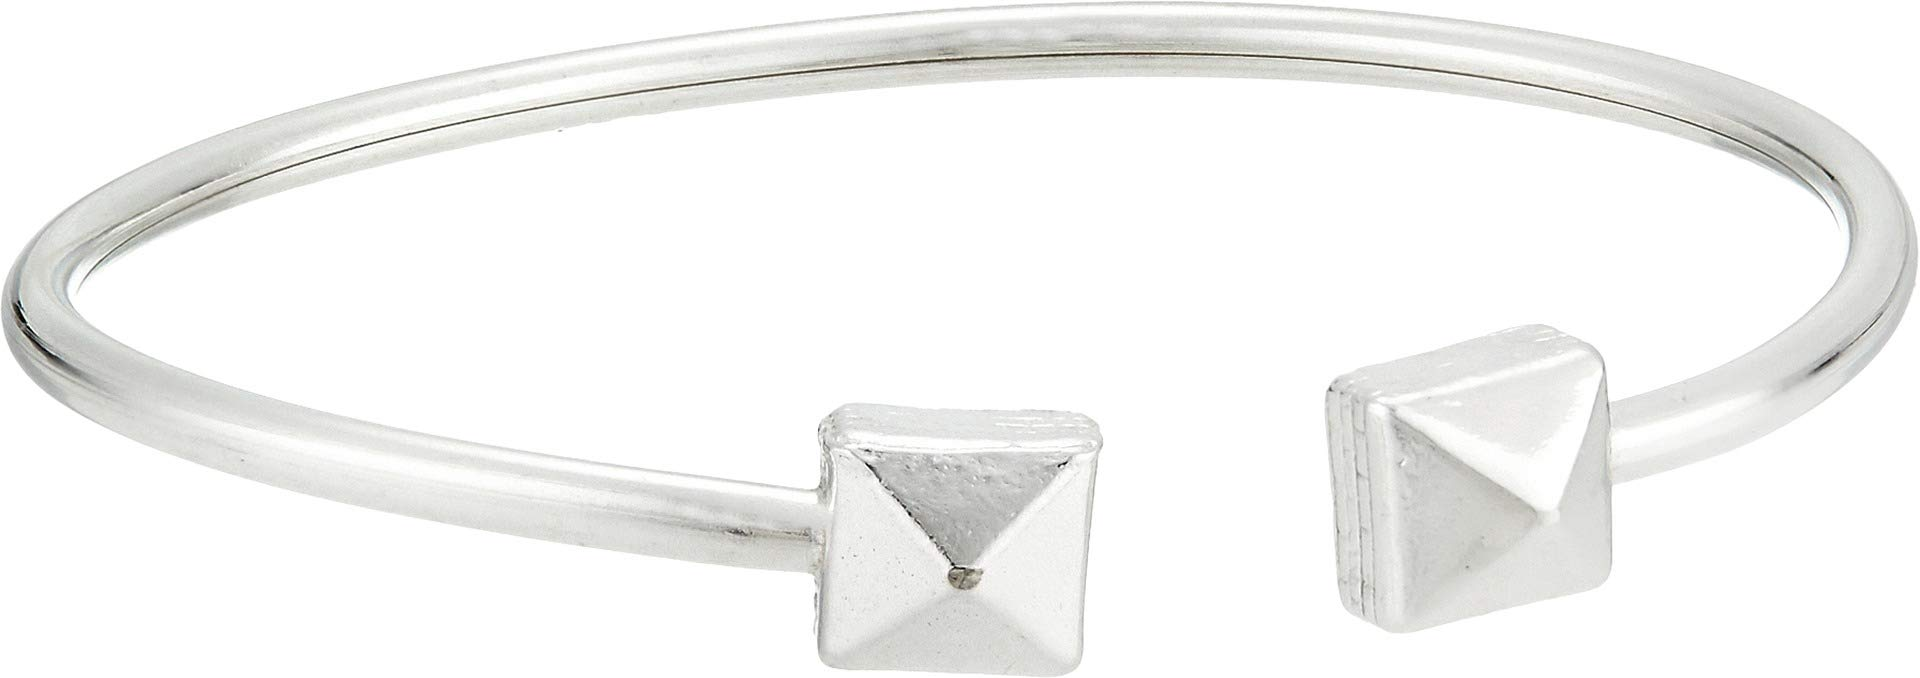 Alex and Ani Women's Pyramid Cuff Bracelet - Precious Metal Sterling Silver One Size